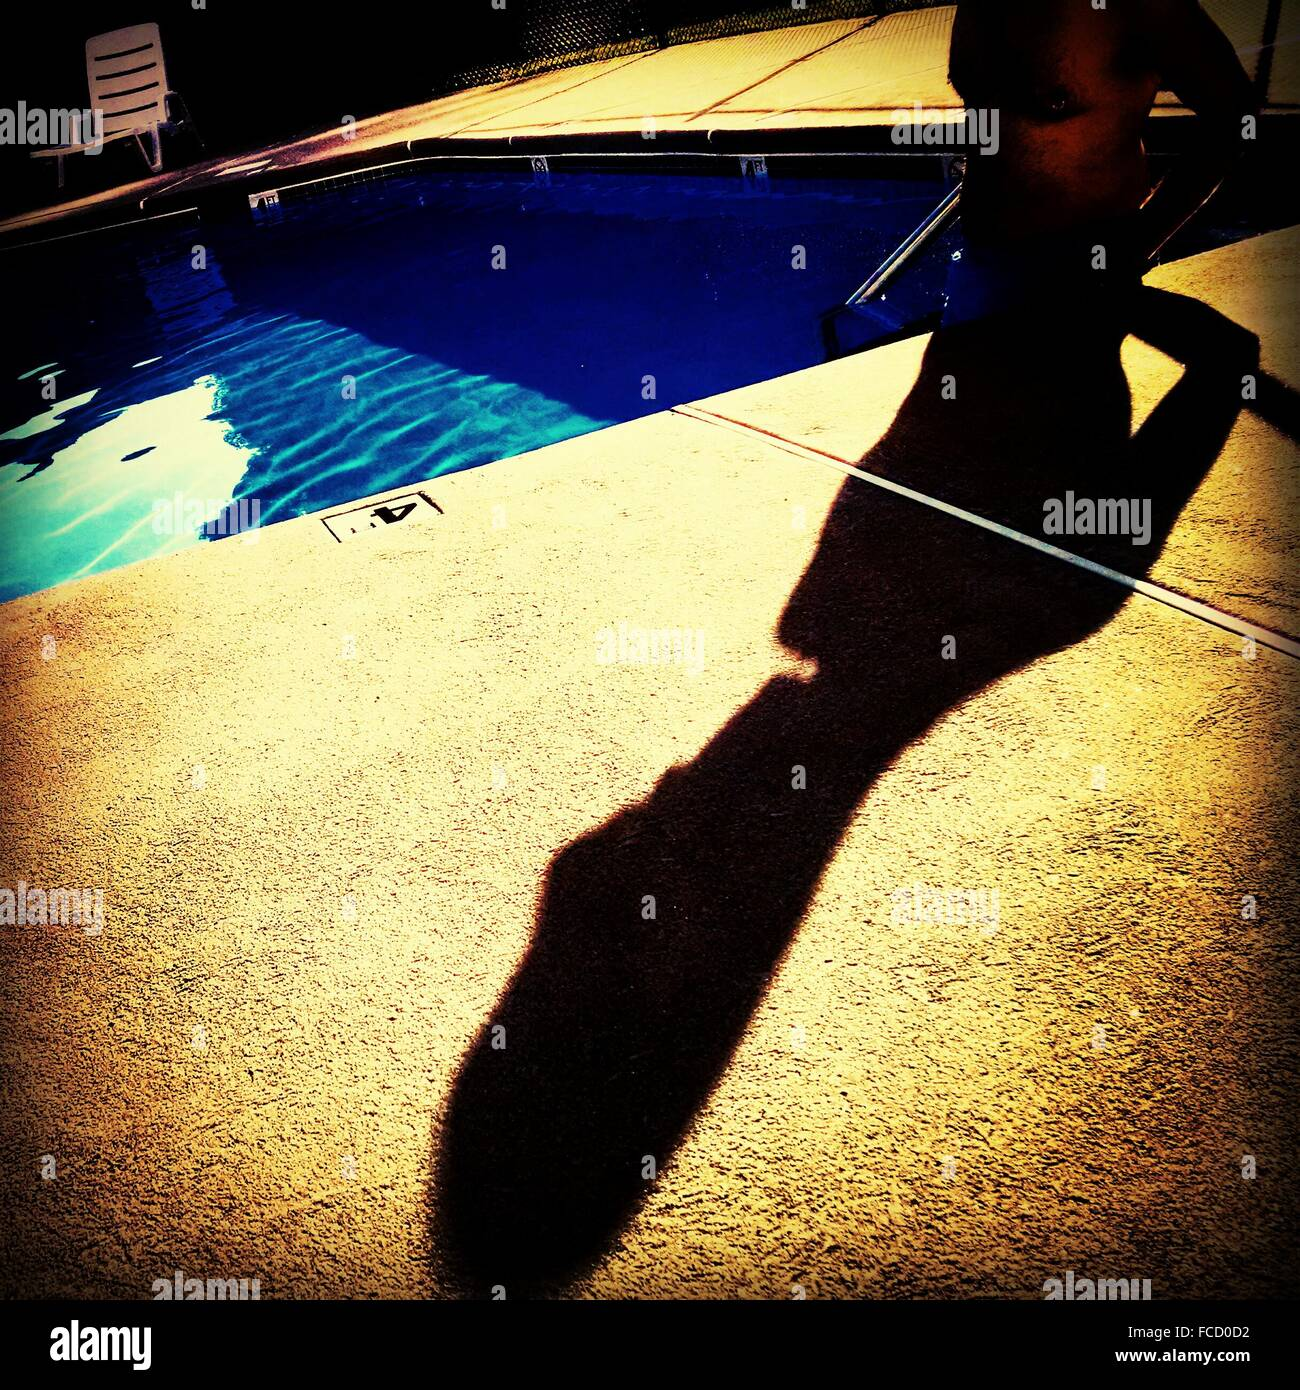 Shadow Of A Man At Poolside - Stock Image